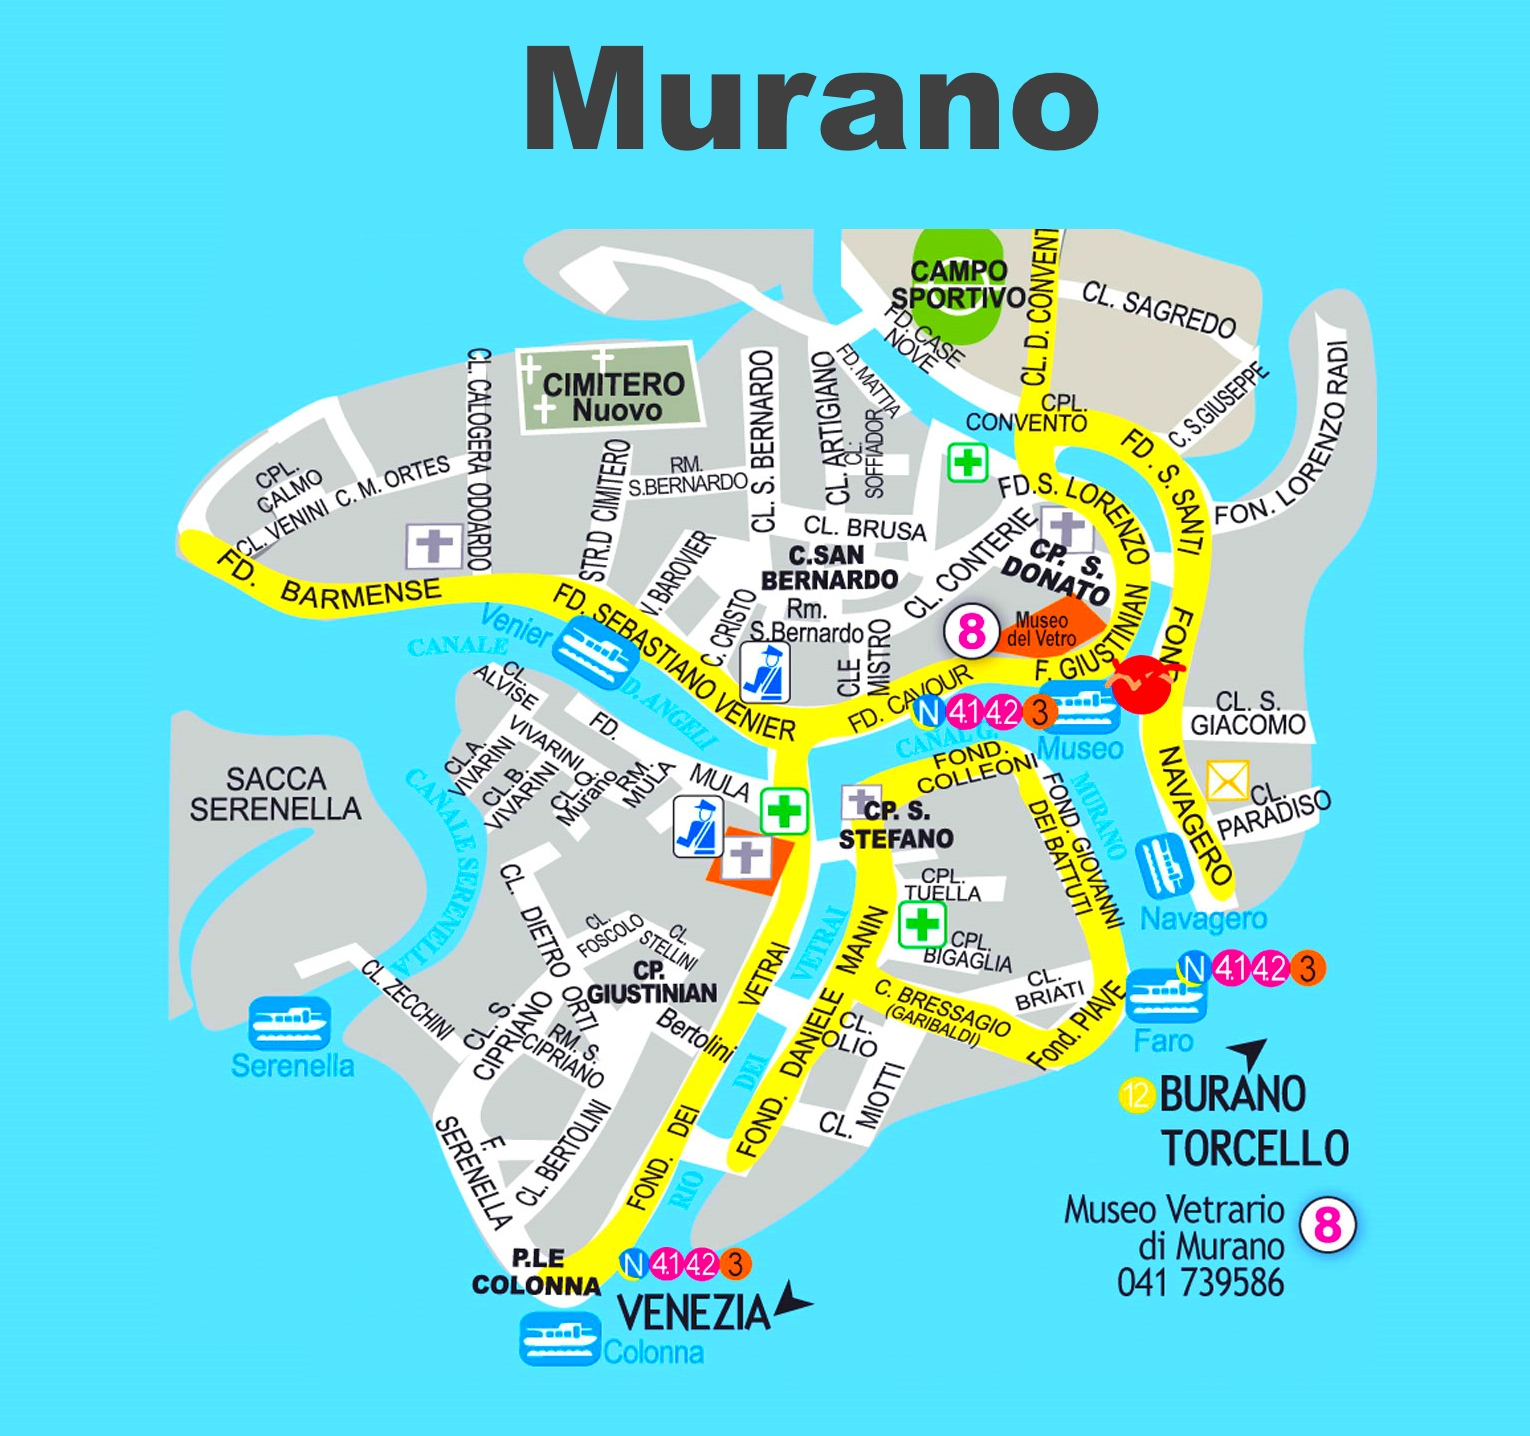 map of venice italy pdf with Murano Tourist Map on 034 moreover plete Hong Kong Travel Map For in addition Fuerteventura Tourist Map as well Karpathos Tourist Map together with Villa borghese walk.